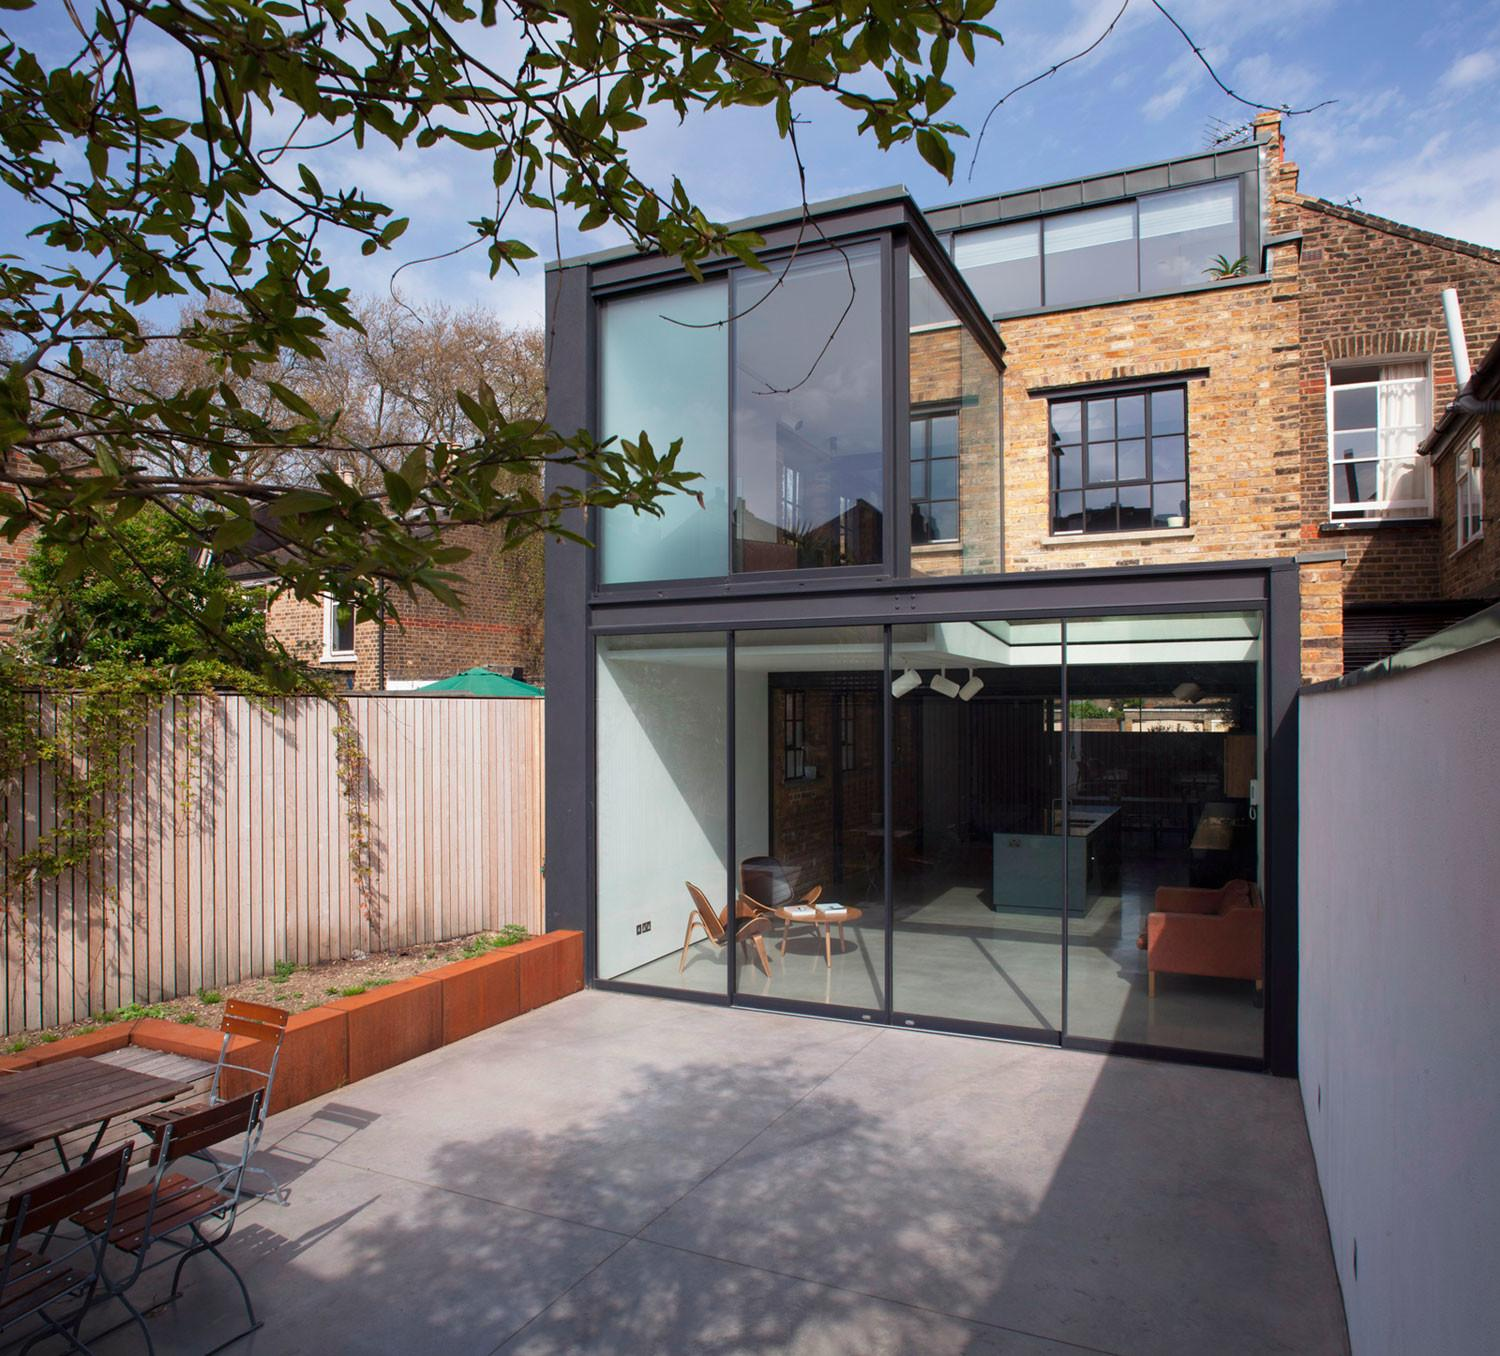 Giles Pike Architects Remodel Home London England